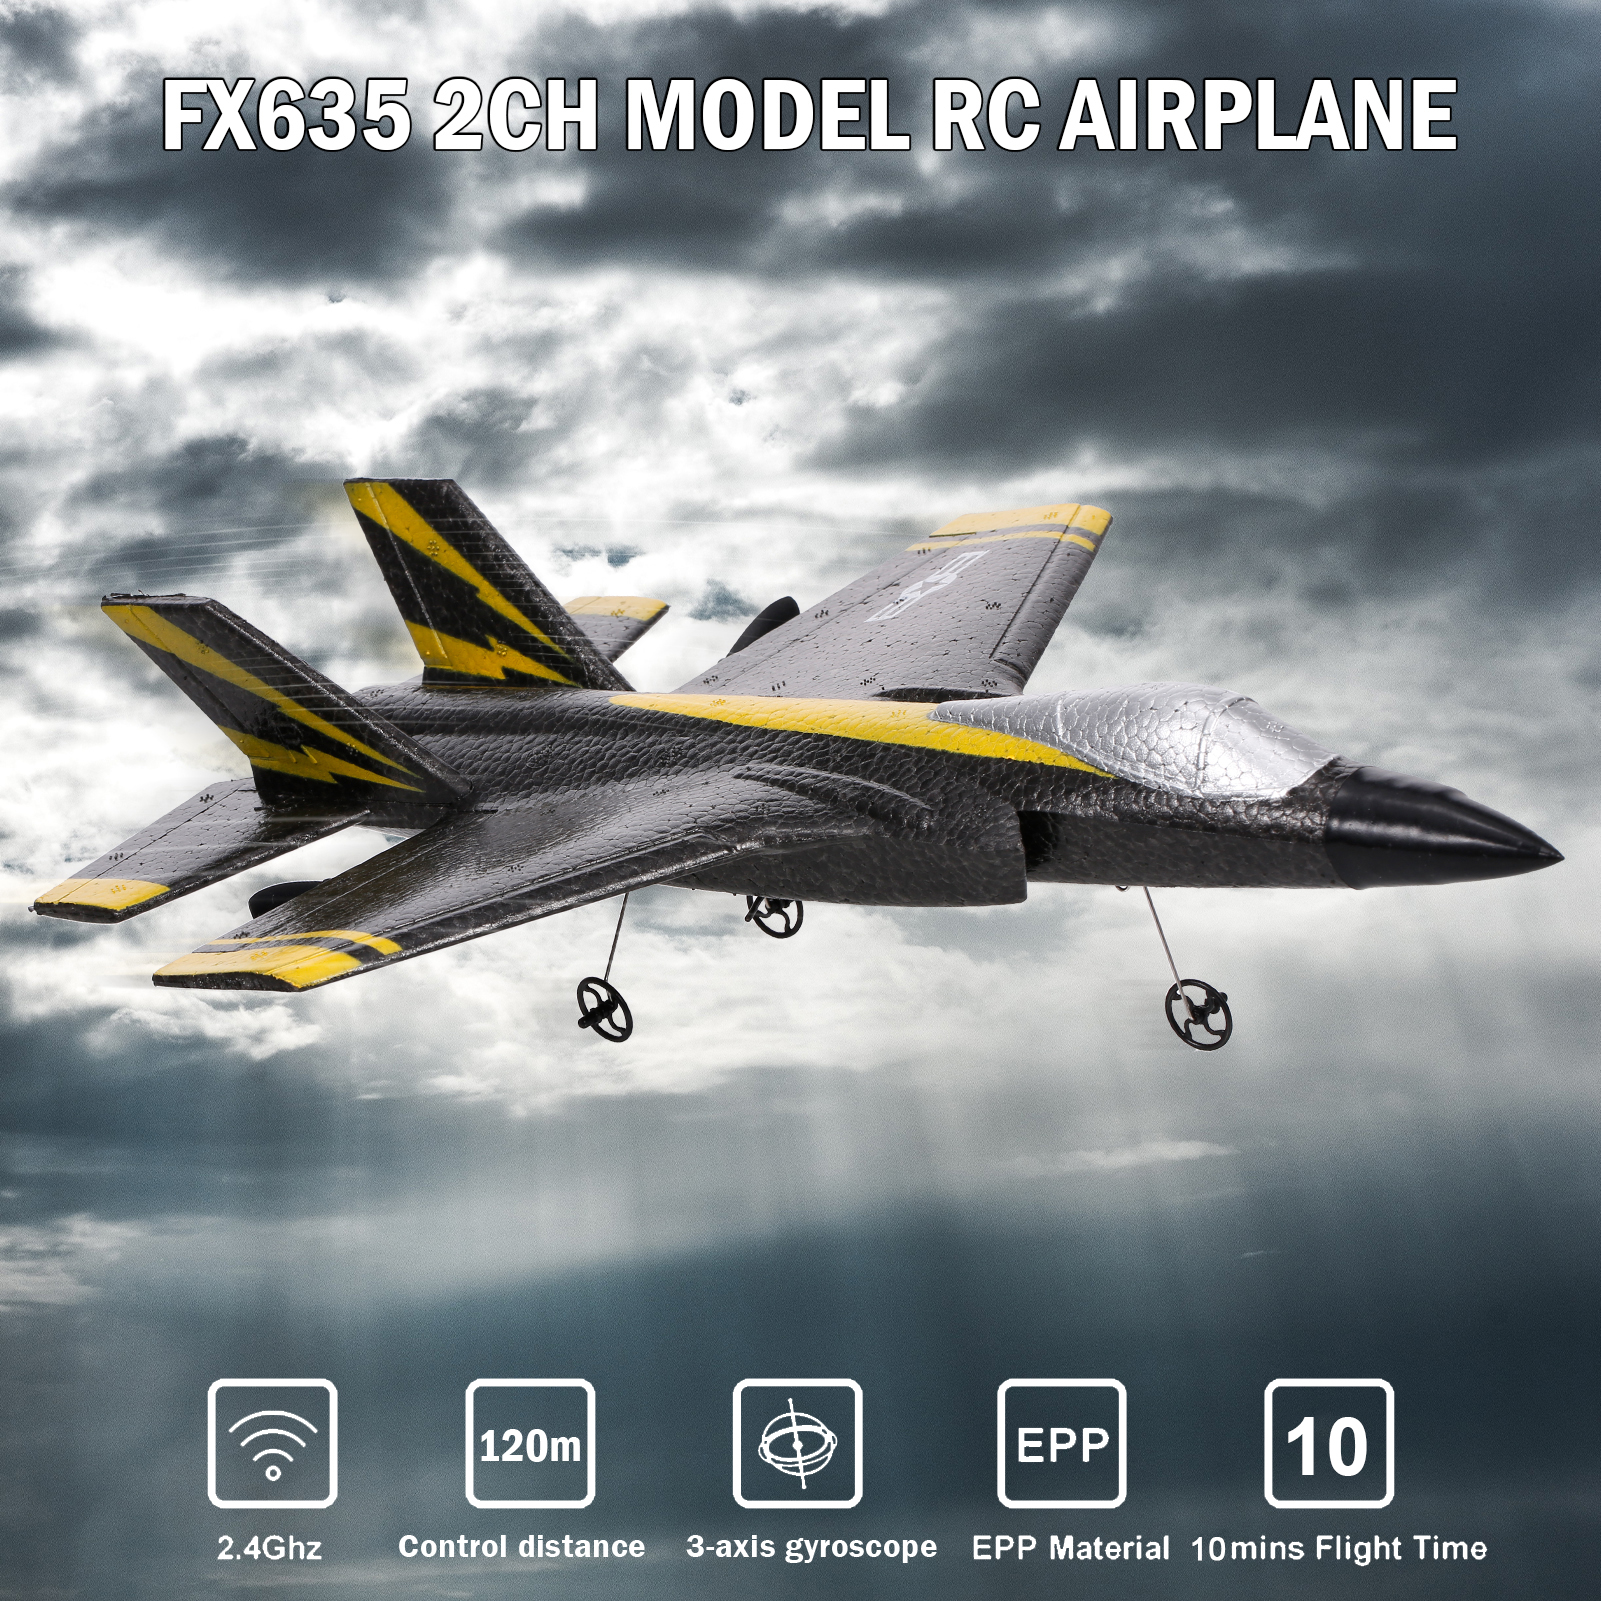 FX635 RC Airplane RC Plane RC Aircraft 2.4Ghz Remote Control Foam Glider RC Glider Plane Fixed Wing Airplane Toys for Kids Adult